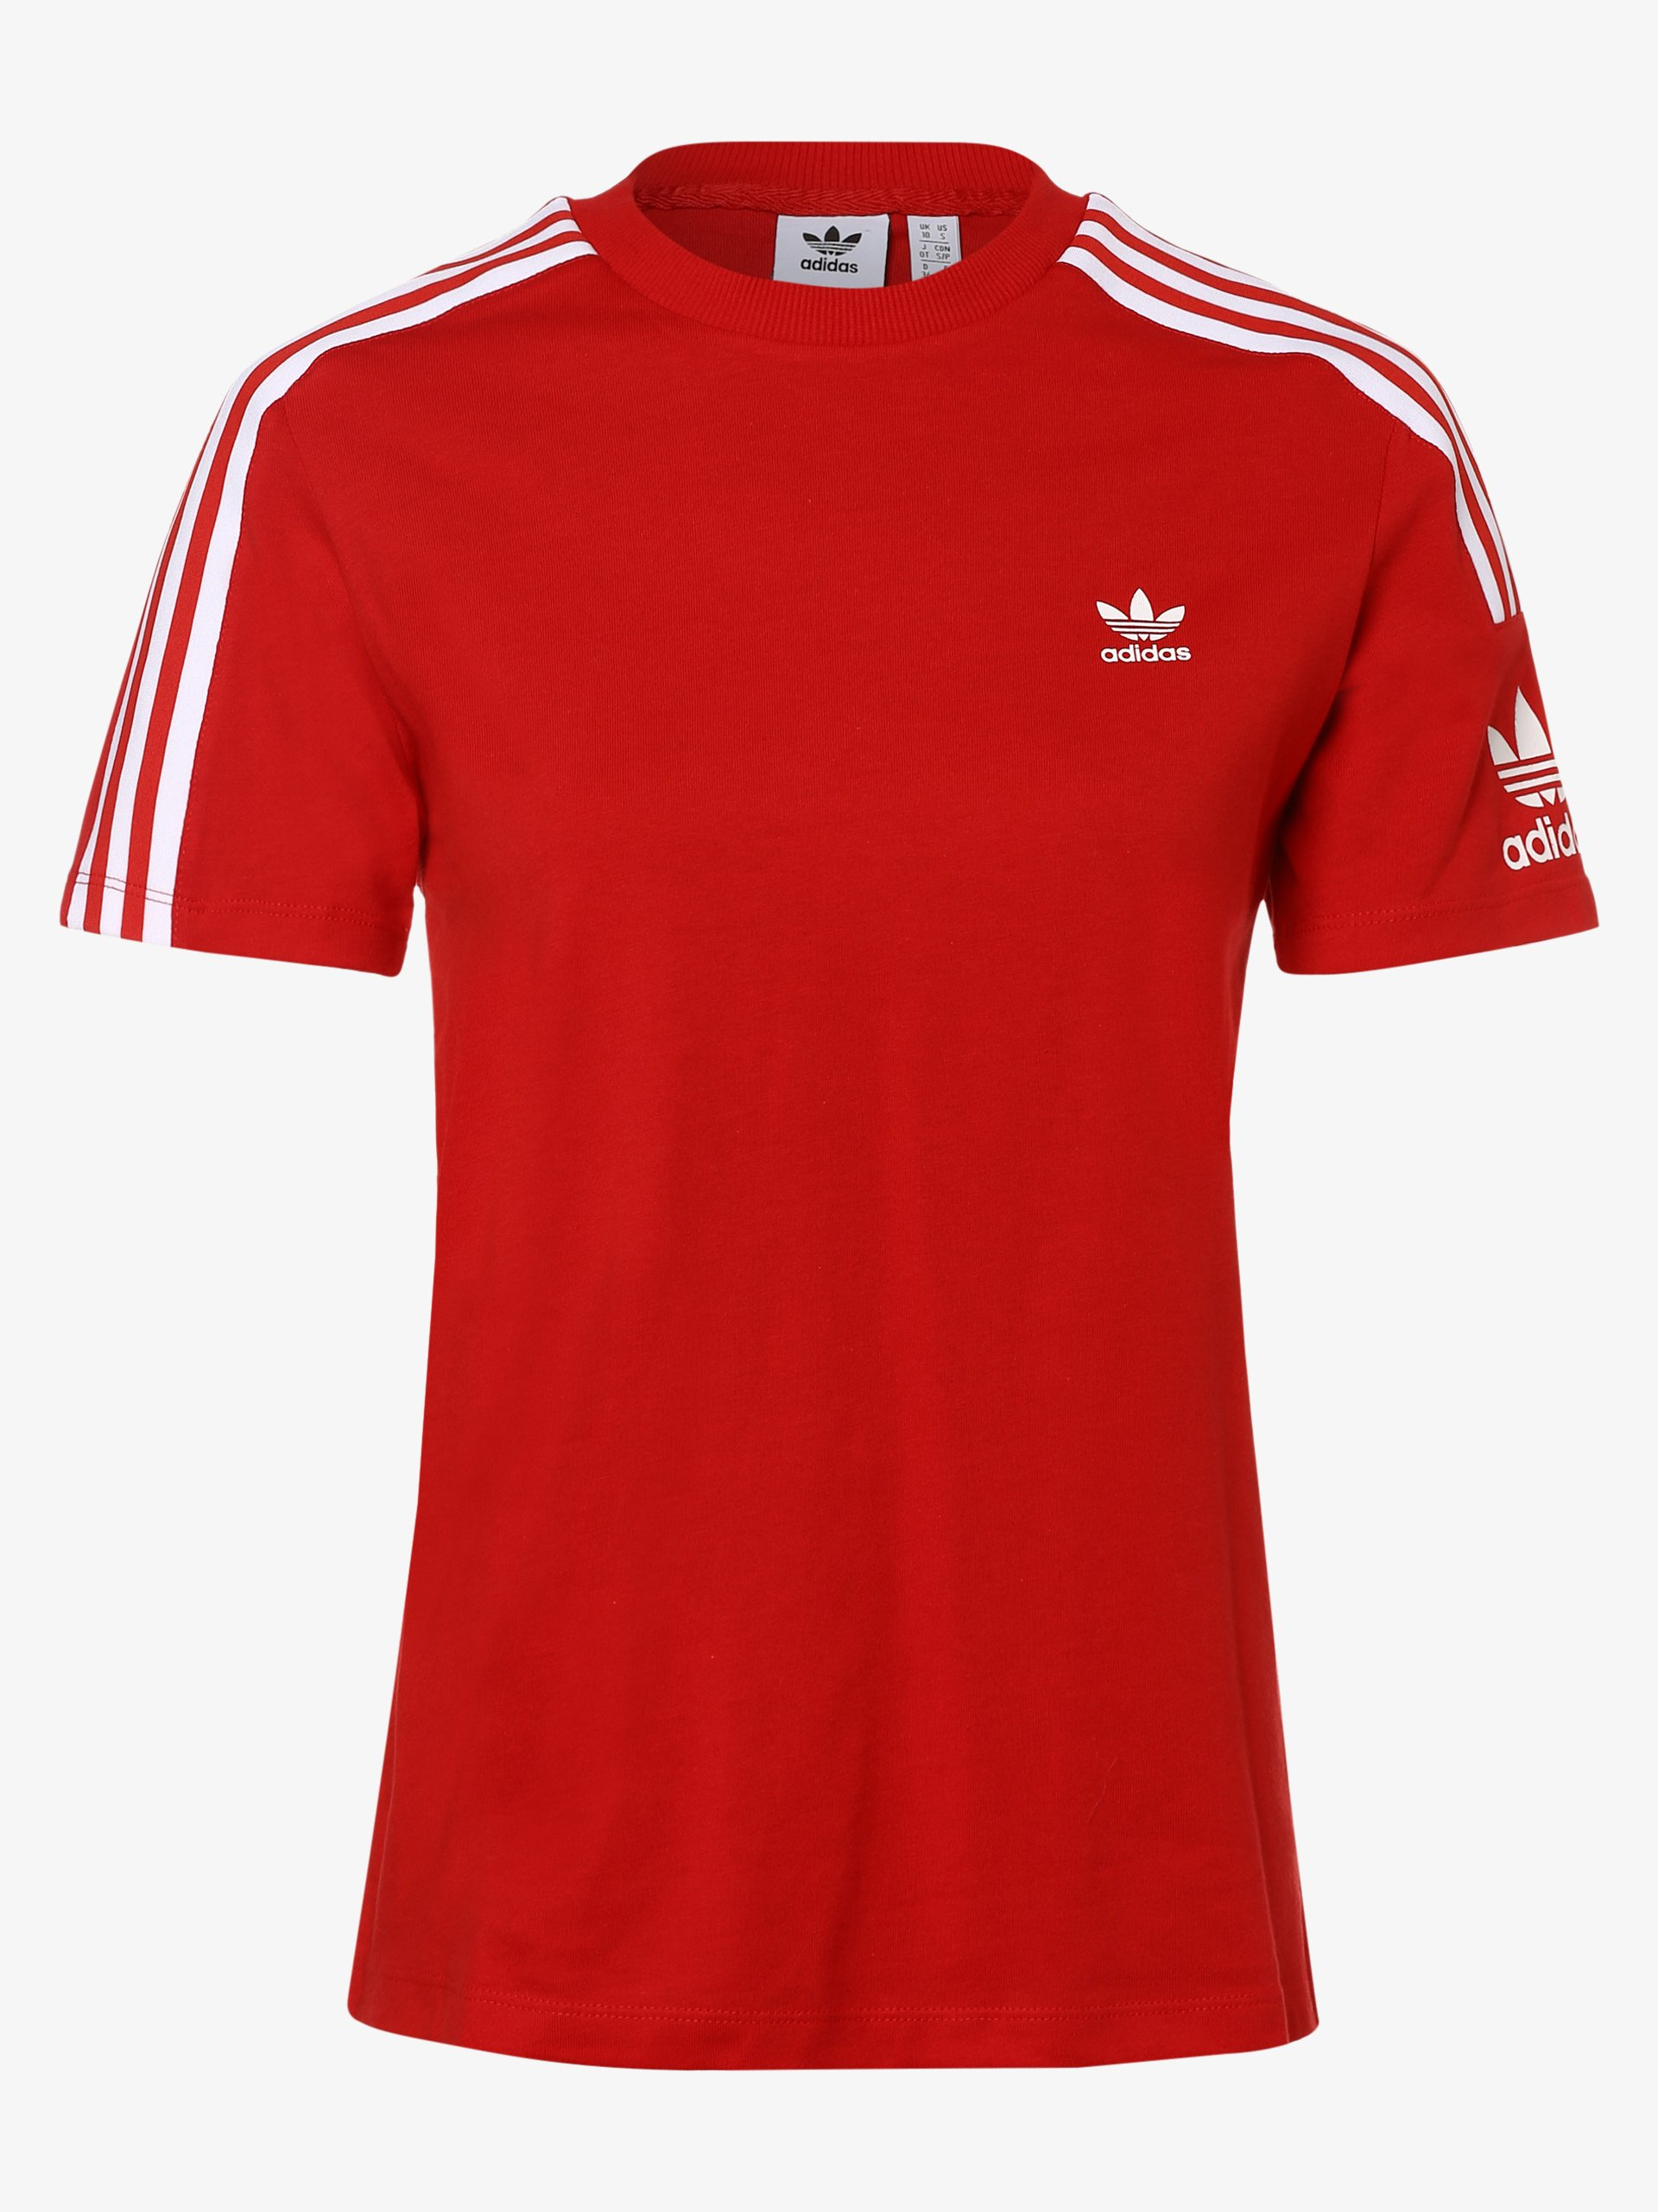 adidas Originals T-shirt damski